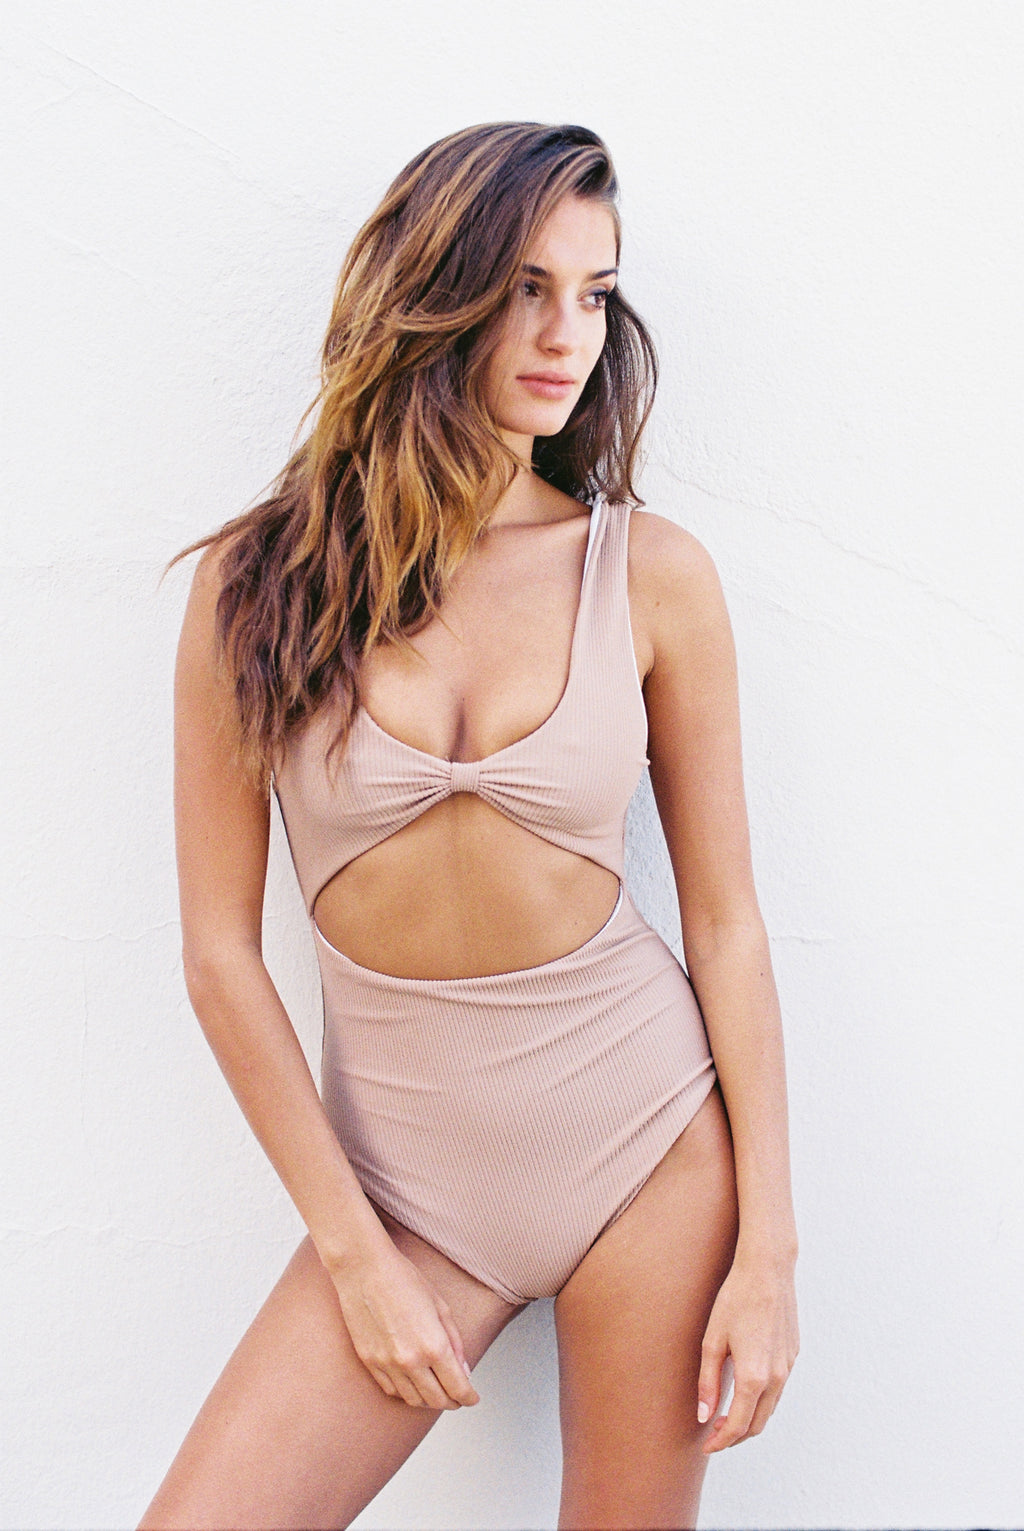 Lou One Piece - Eurvin Swimwear & Clothing - Australia Made